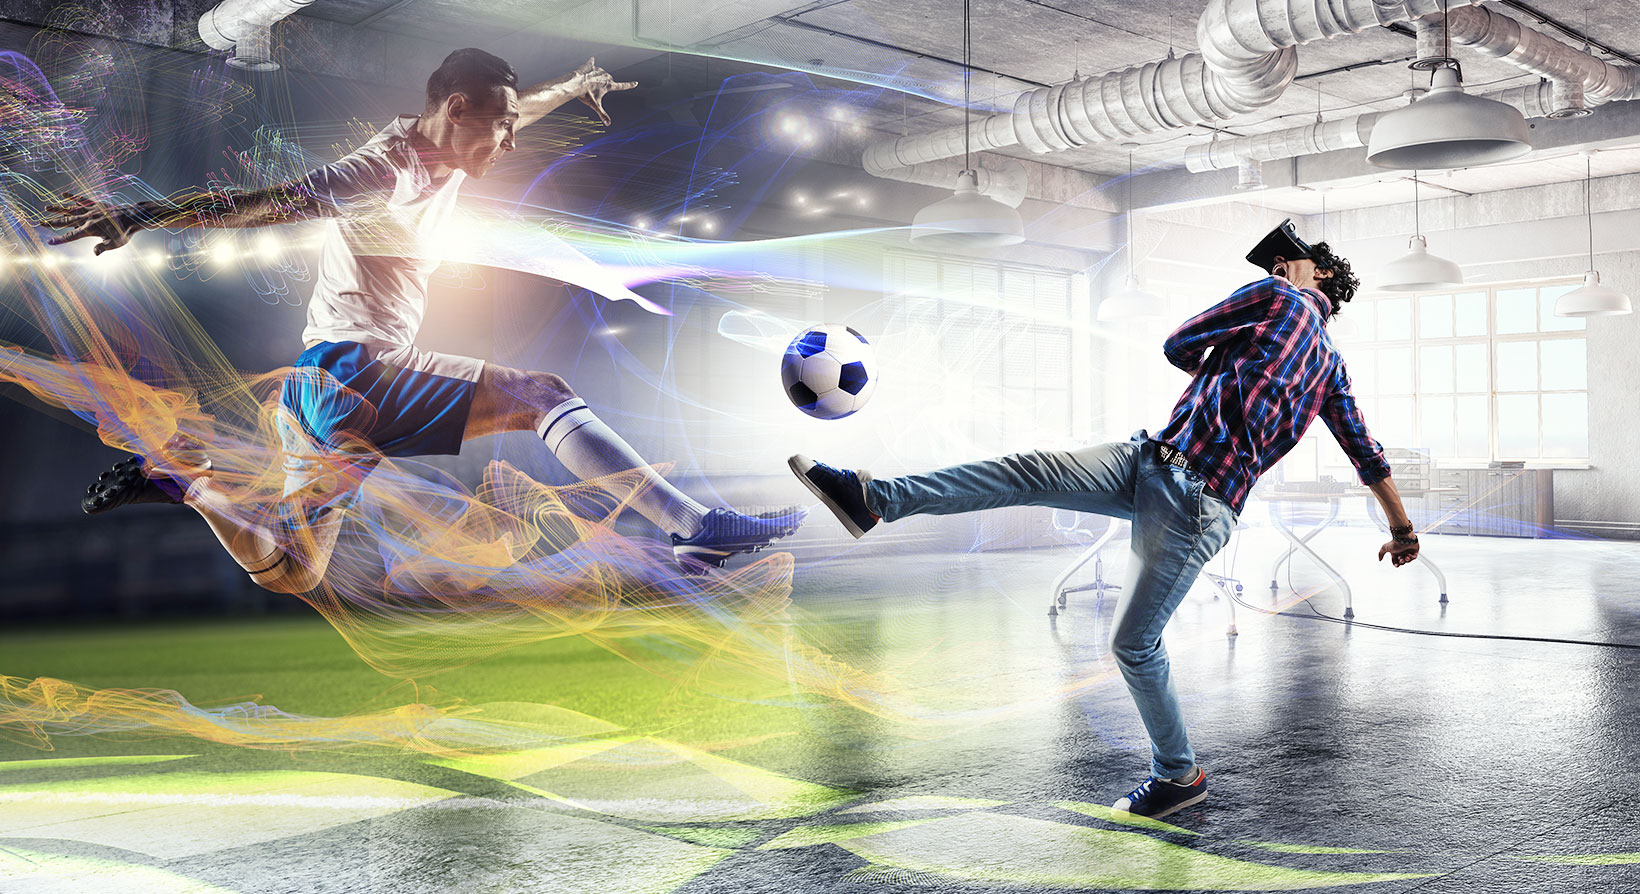 man immersed into VR Video by playing soccer with a player